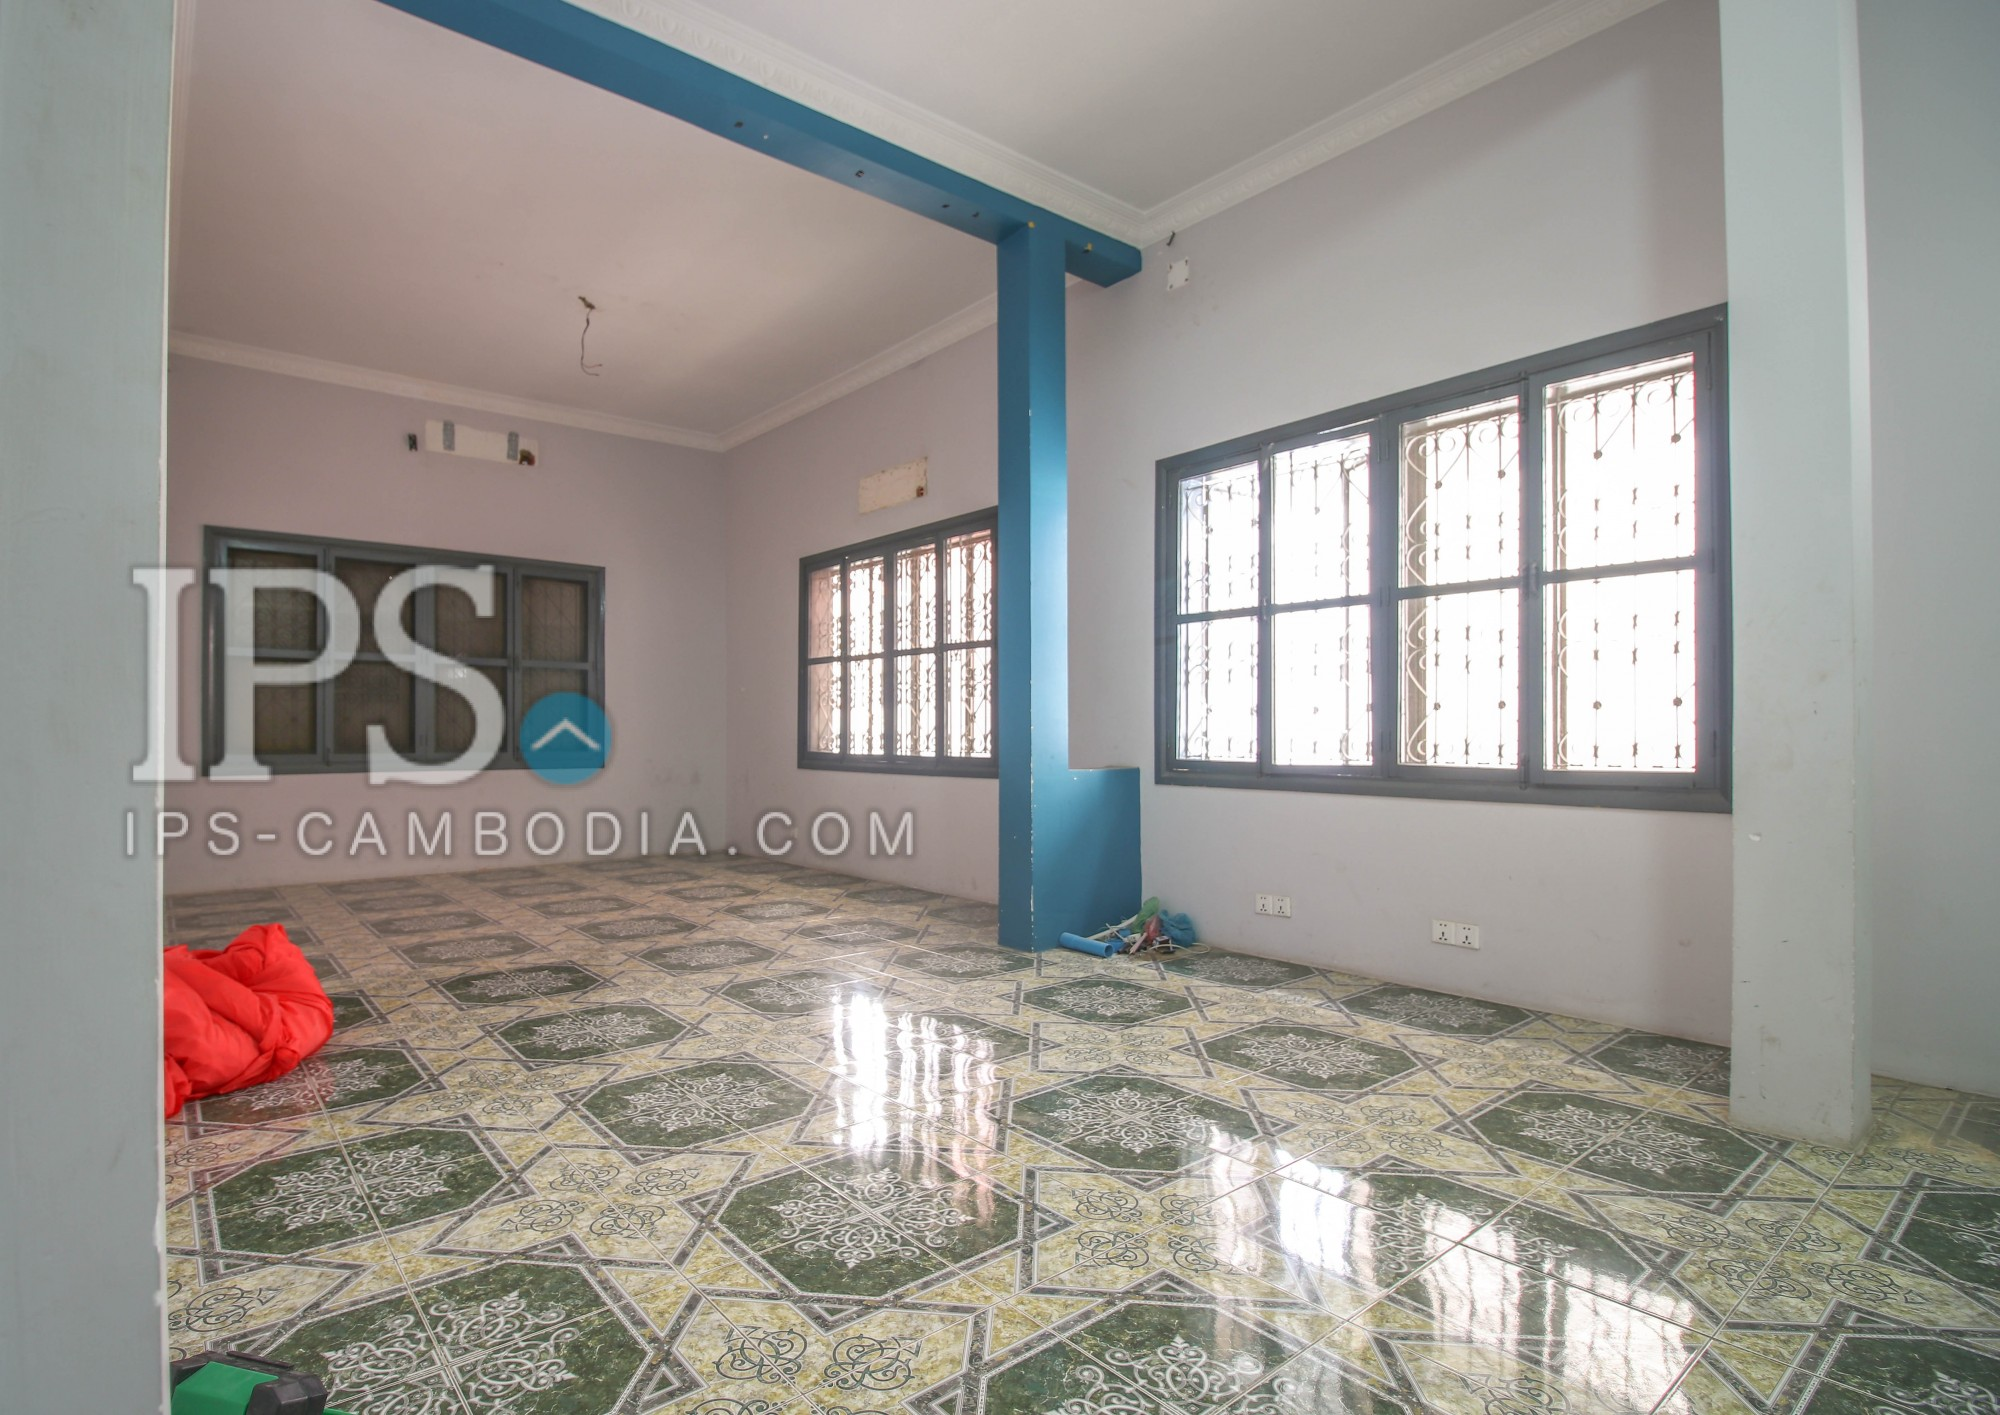 70 sqm. Office Space For Rent - BKK1, Phnom Penh